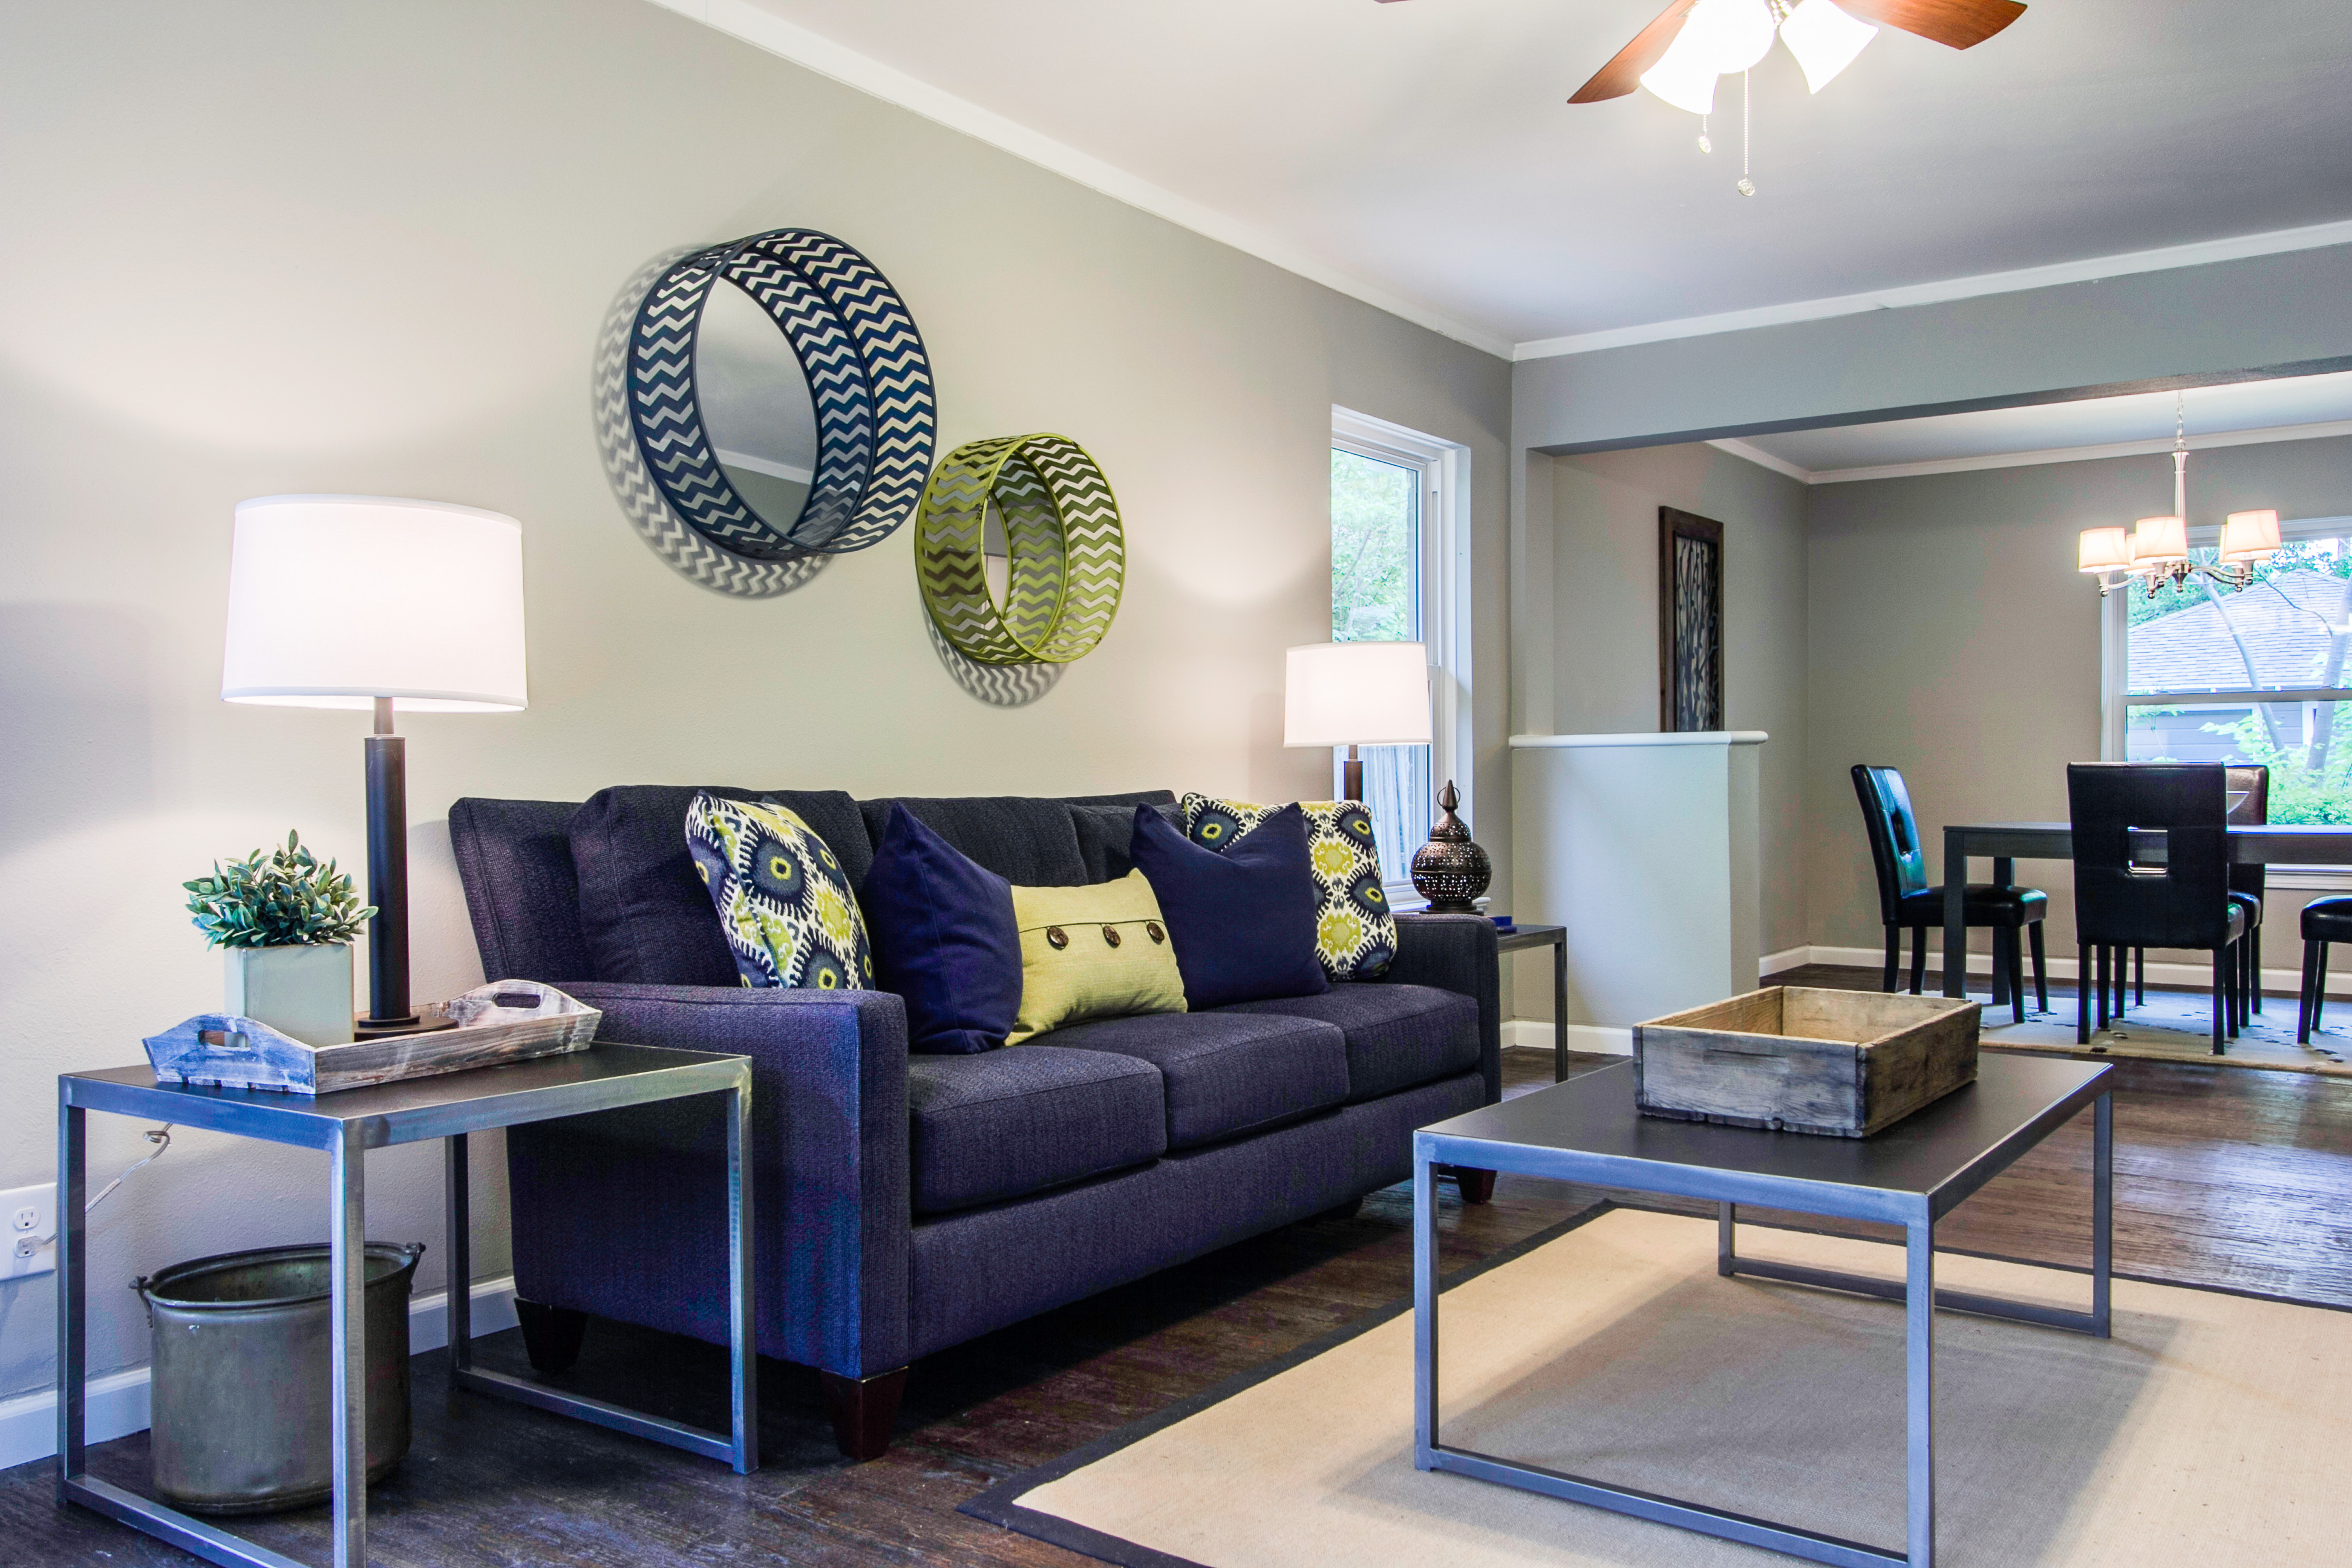 Home Star Staging Real Estate Investment  Homes For Sale